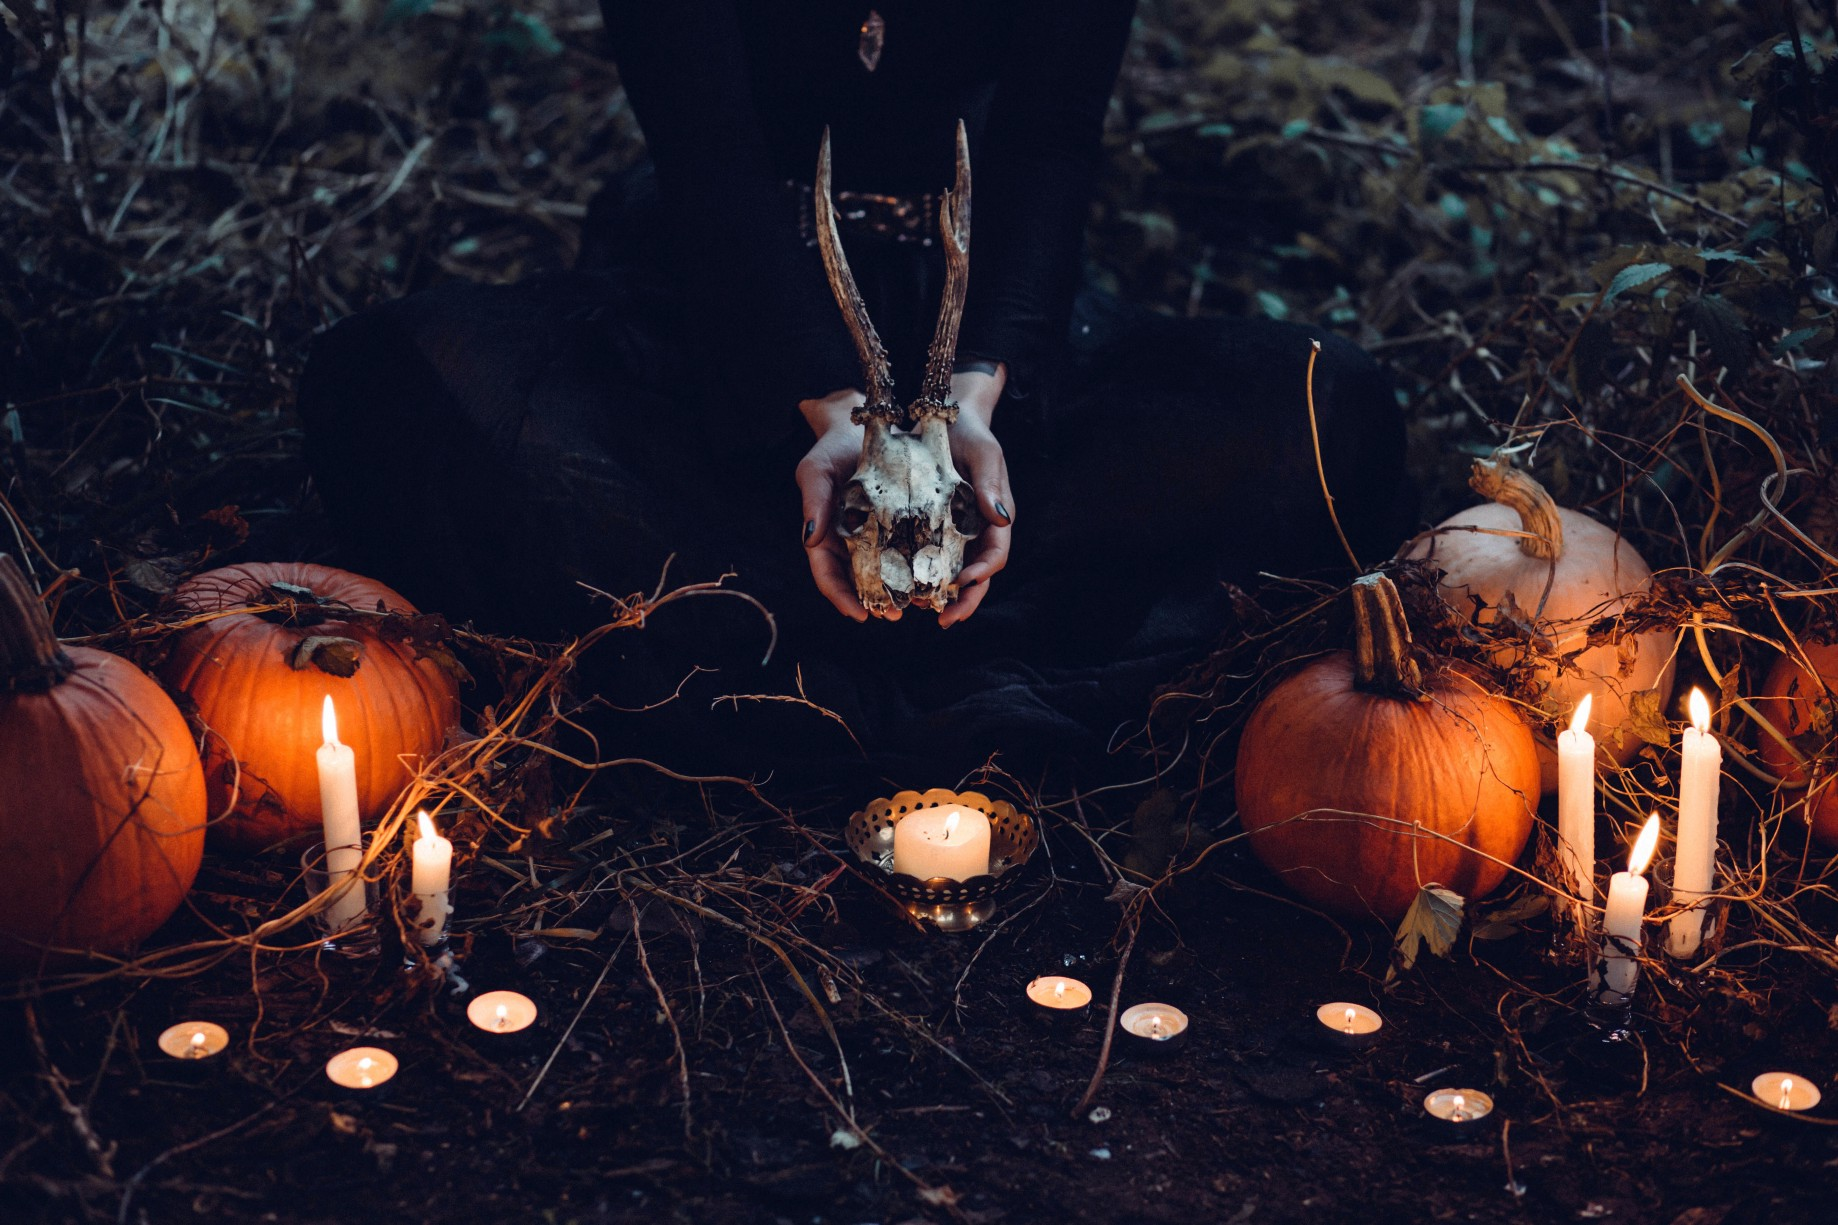 Witches are Taking Over Tumblr - Elica Starlust - Medium